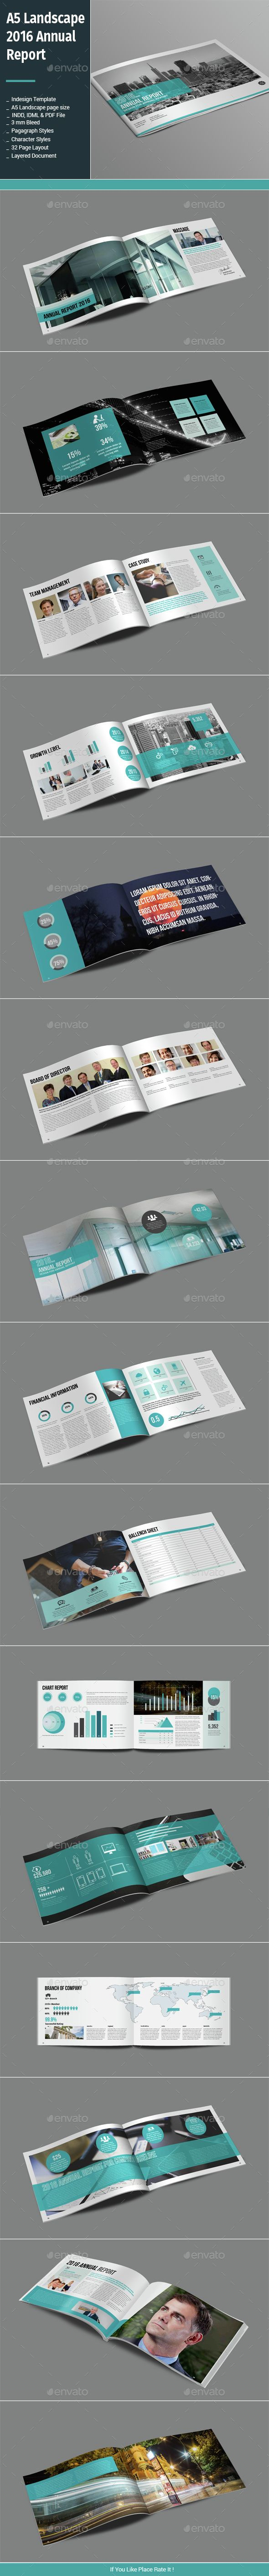 A5 Landscape 2016 Annual Report Template InDesign